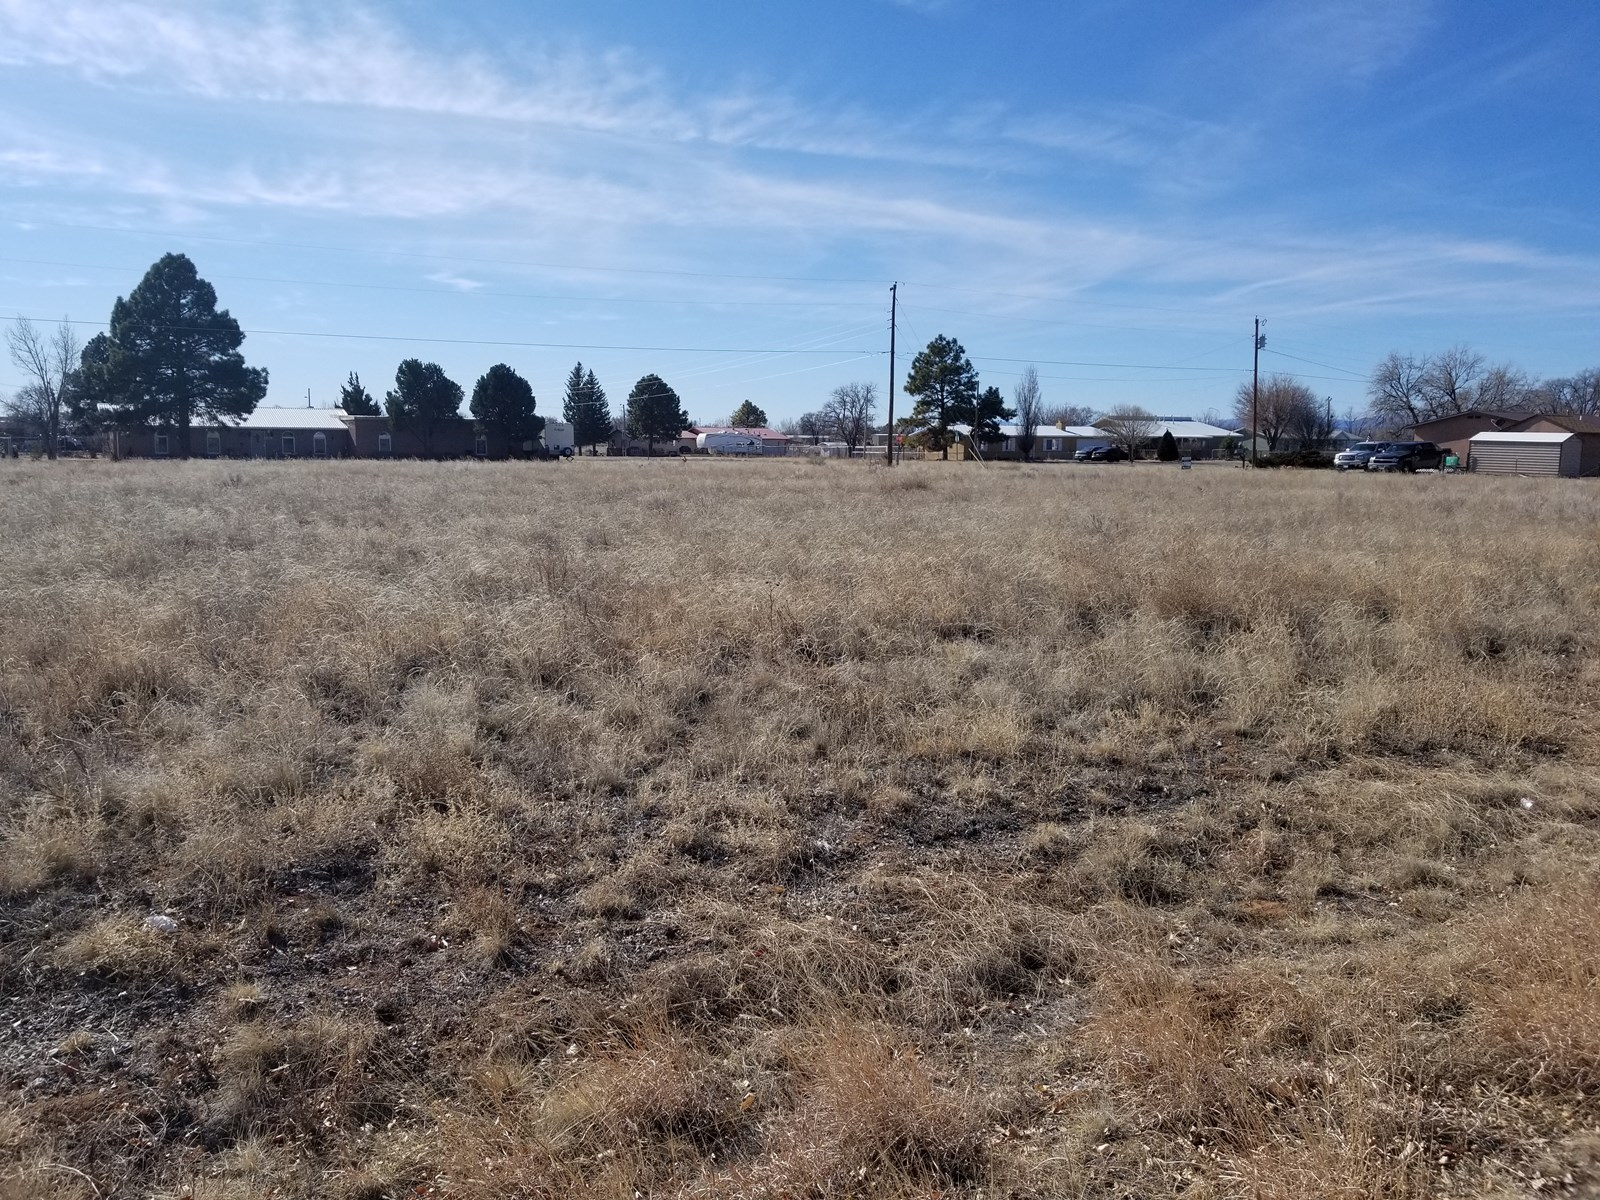 Moriarty NM Residential Lot For Sale in Town